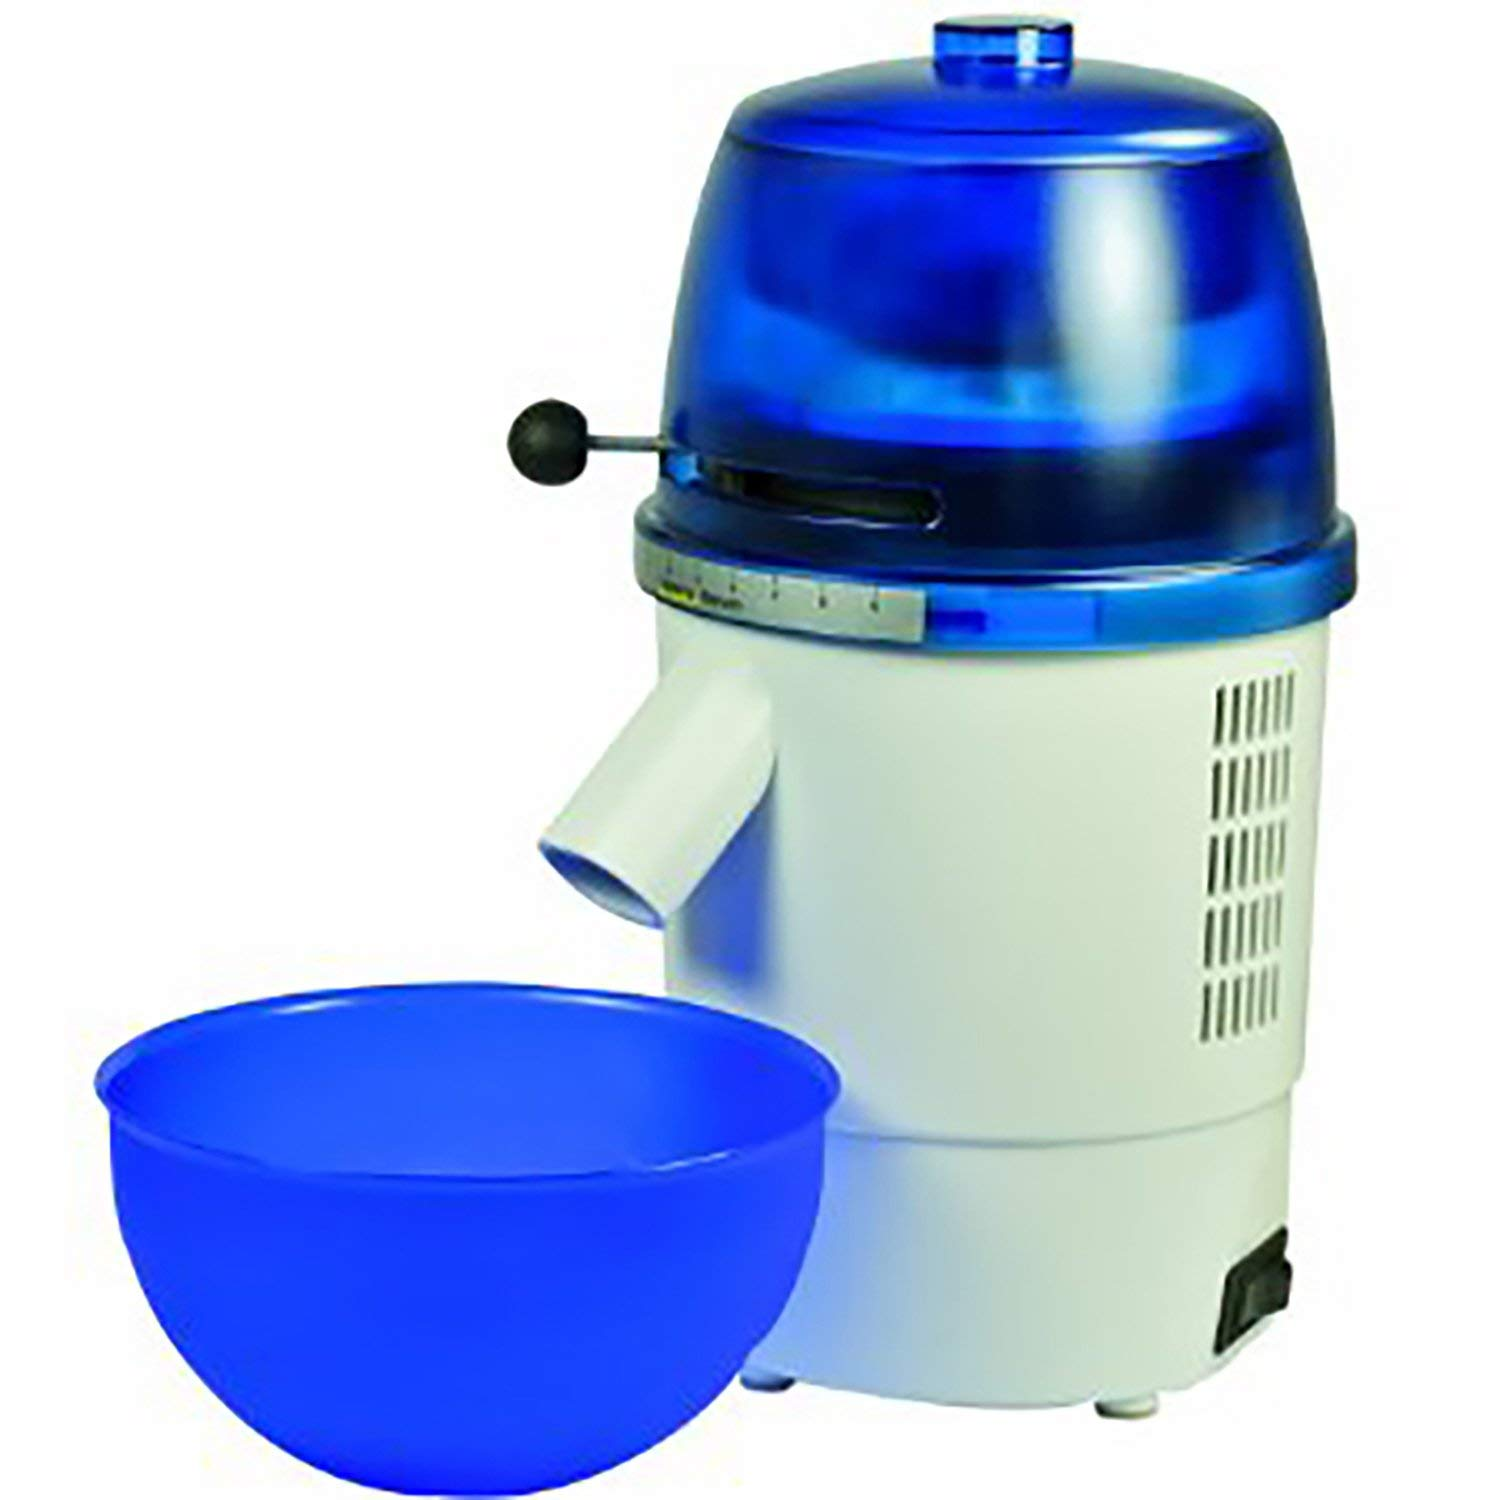 Hawos Novum Grain Mill with Funnel and Bowl Color: Blue 110 Volts